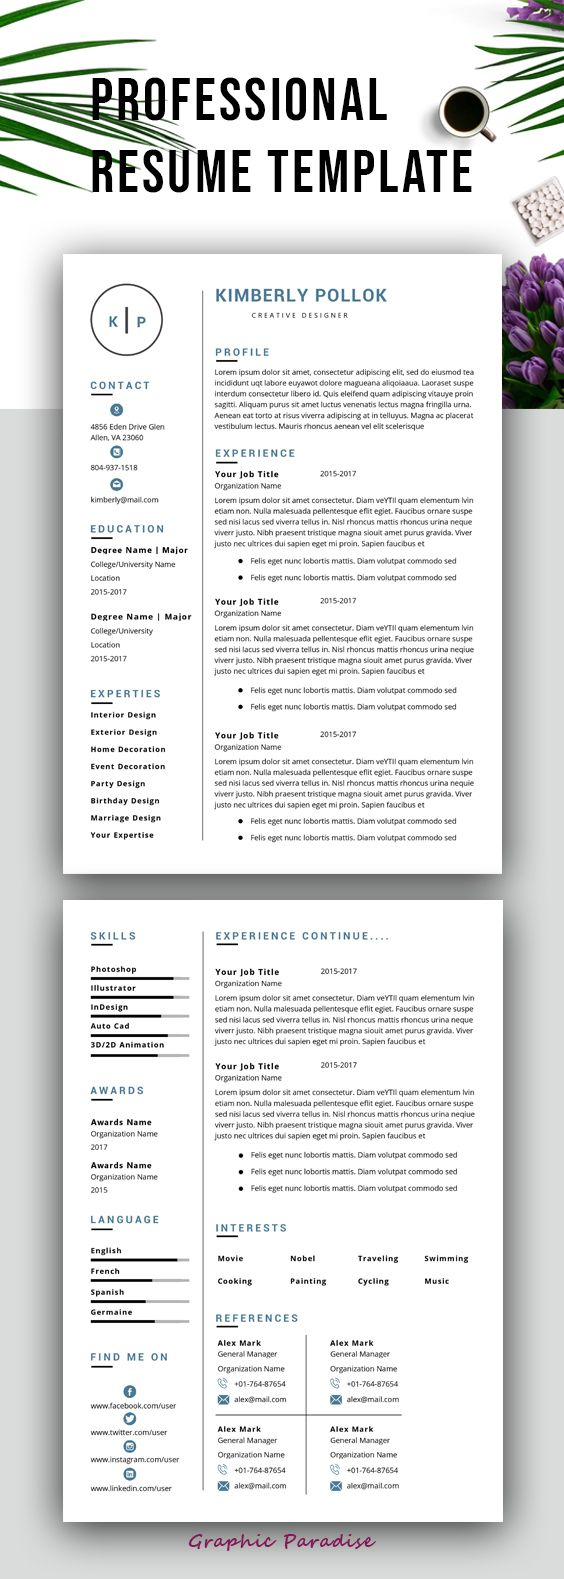 Resume Template Professional Resume Template Instant Download Resume Template Word Cv Resume Template Professional Resume Template Free Resume Template Word